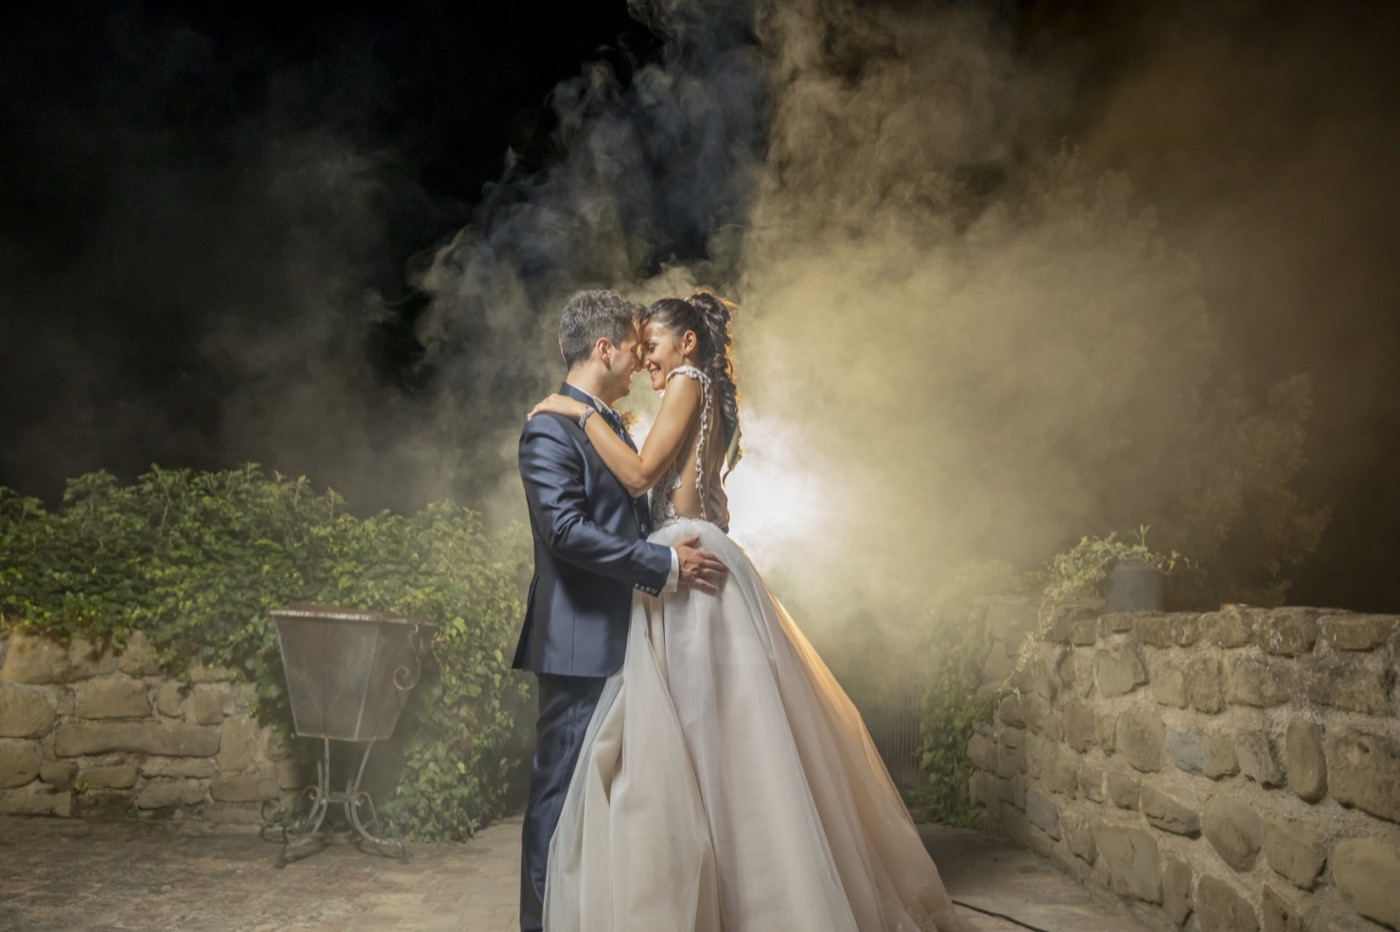 Claudio-Coppola-wedding-photographer-castello-rosciano-torgiano-65